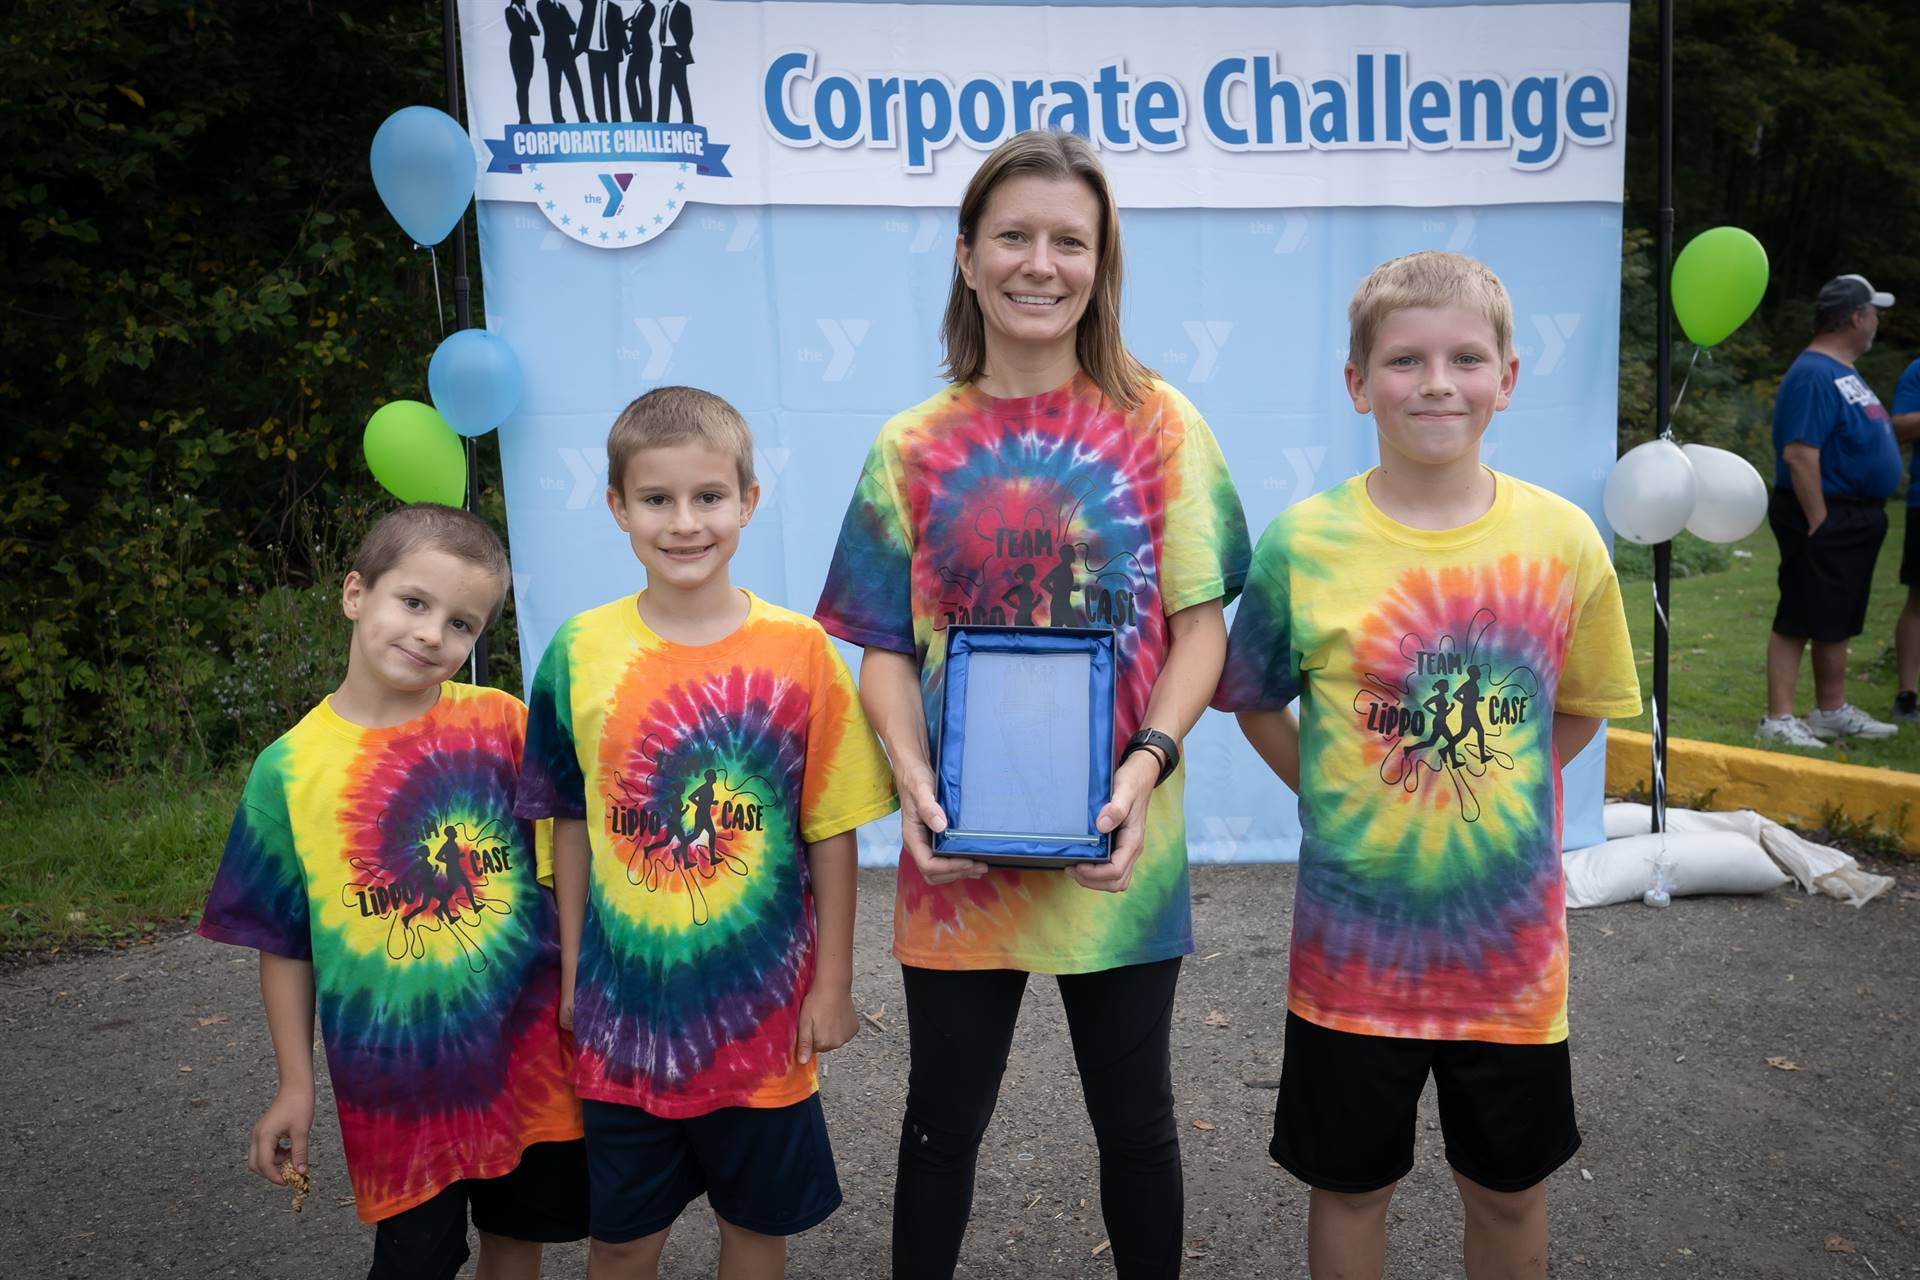 Woman and three kids in front of corporate challenge banner